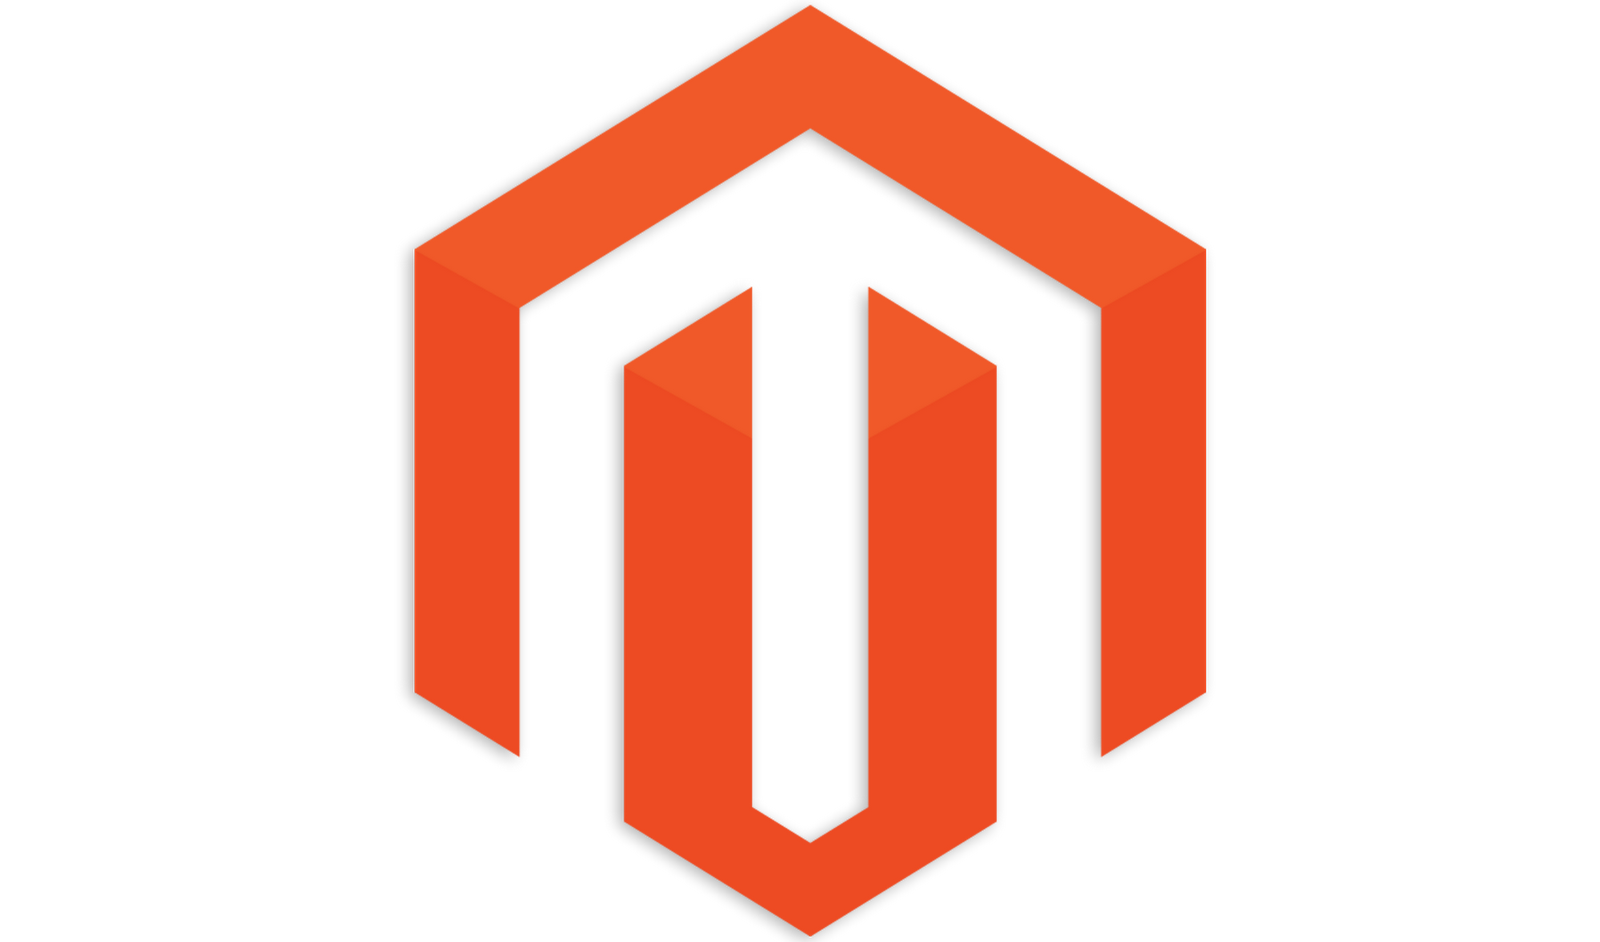 Website svg domain name. Parcelforce magento extension using